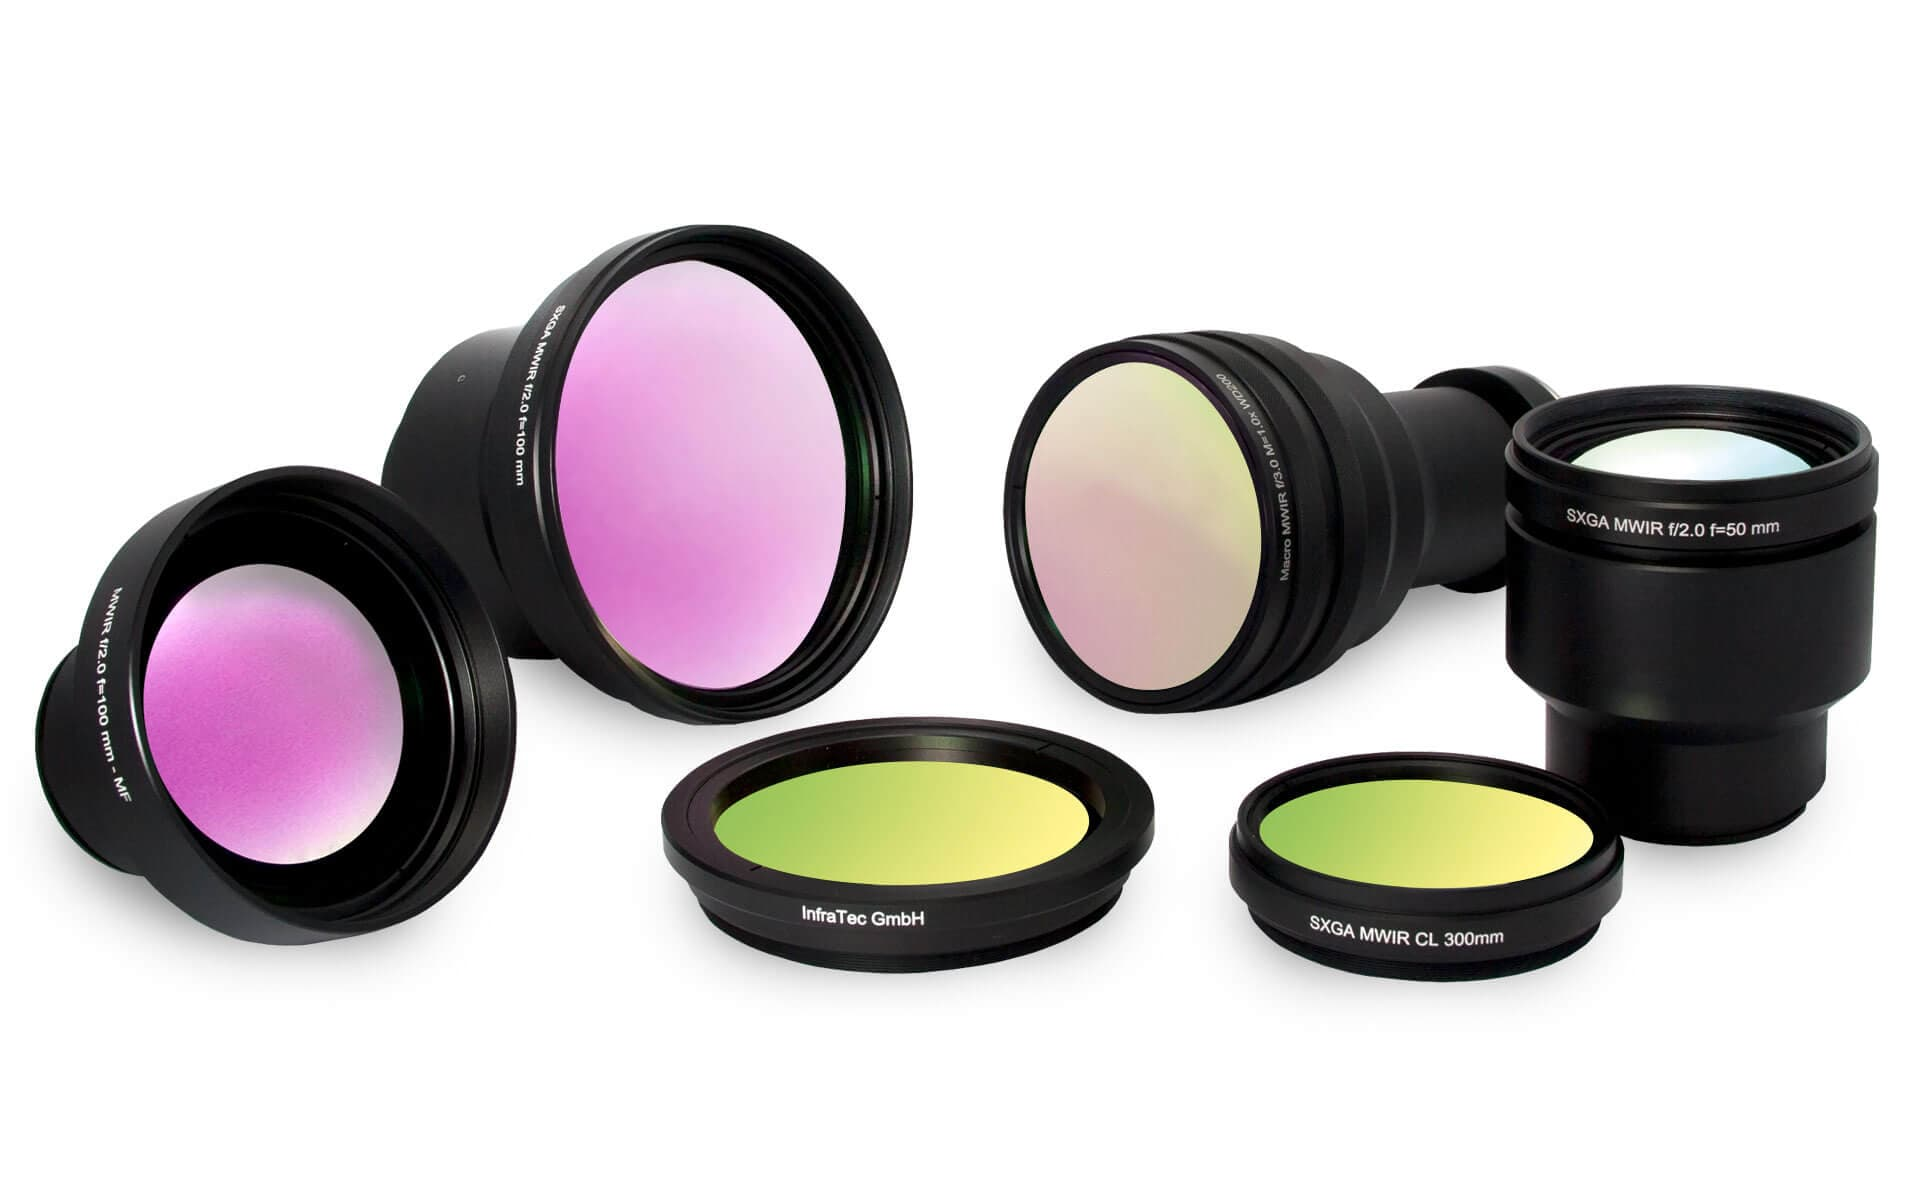 Lenses of infrared camera mageir series